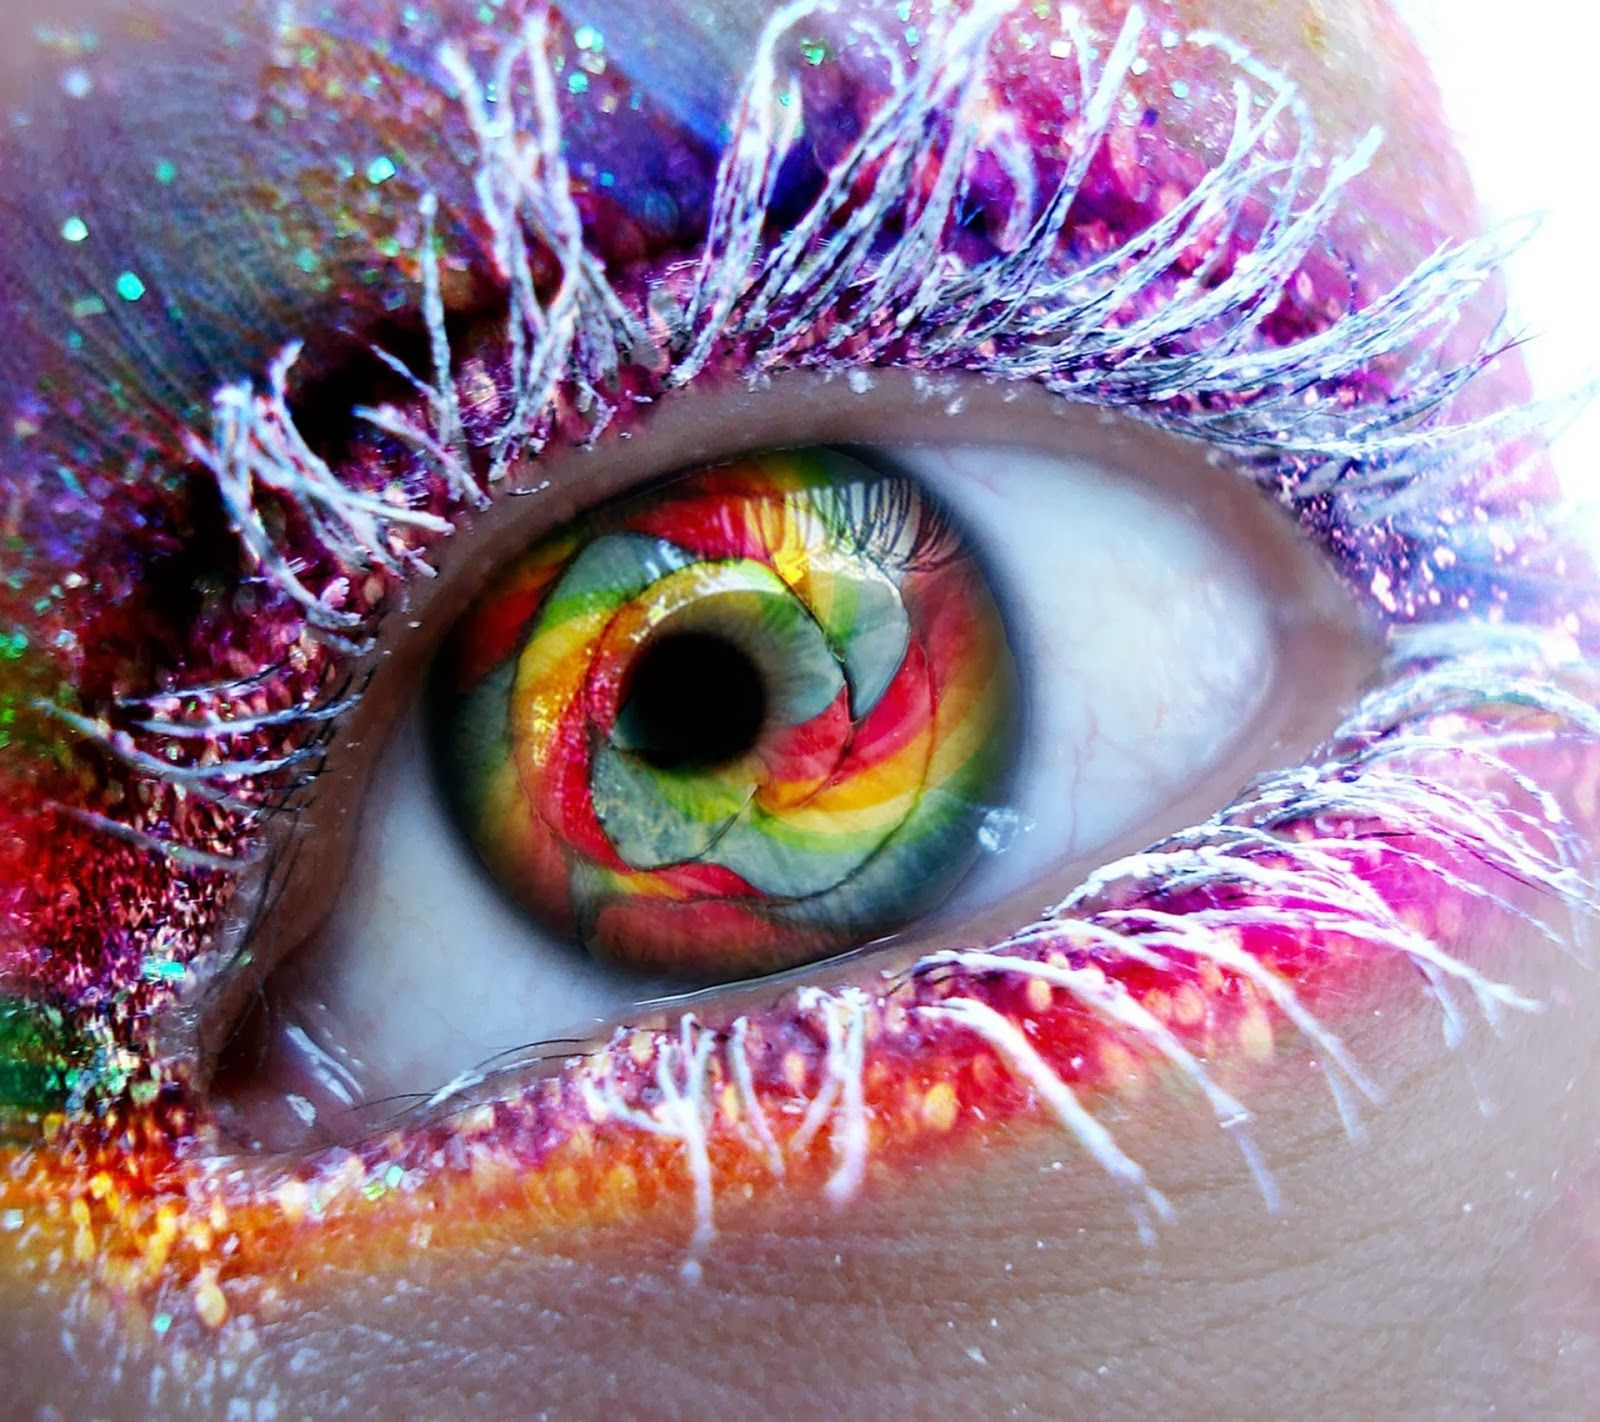 Colorful HD Wallpapers Free Download - HD Wallpapers